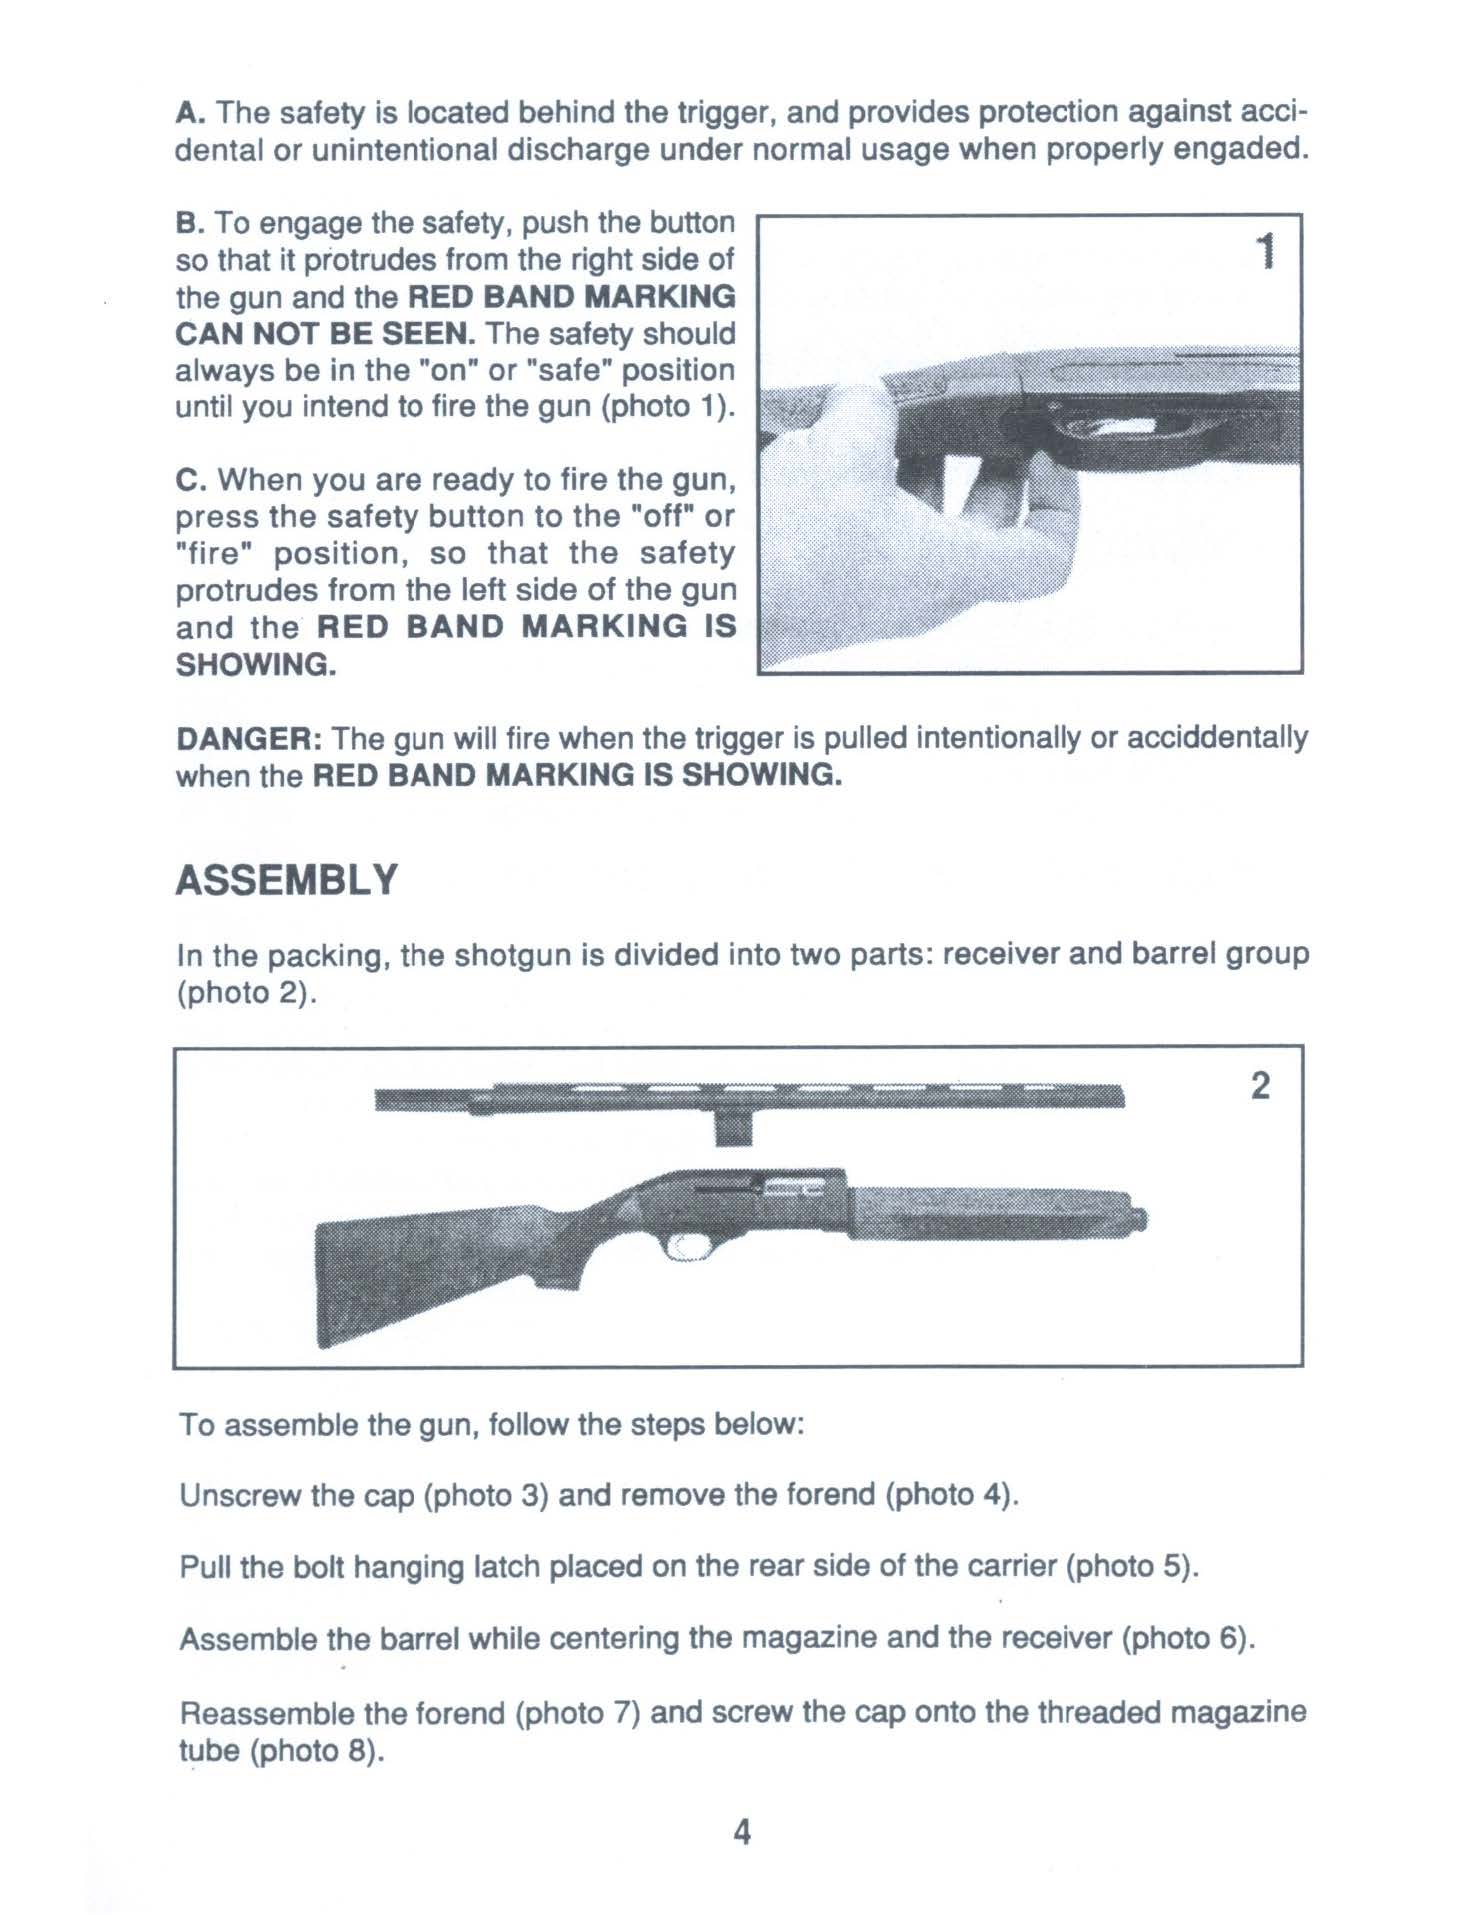 lion_manual_advanced_tactical_imports_huntsville_al_page_04